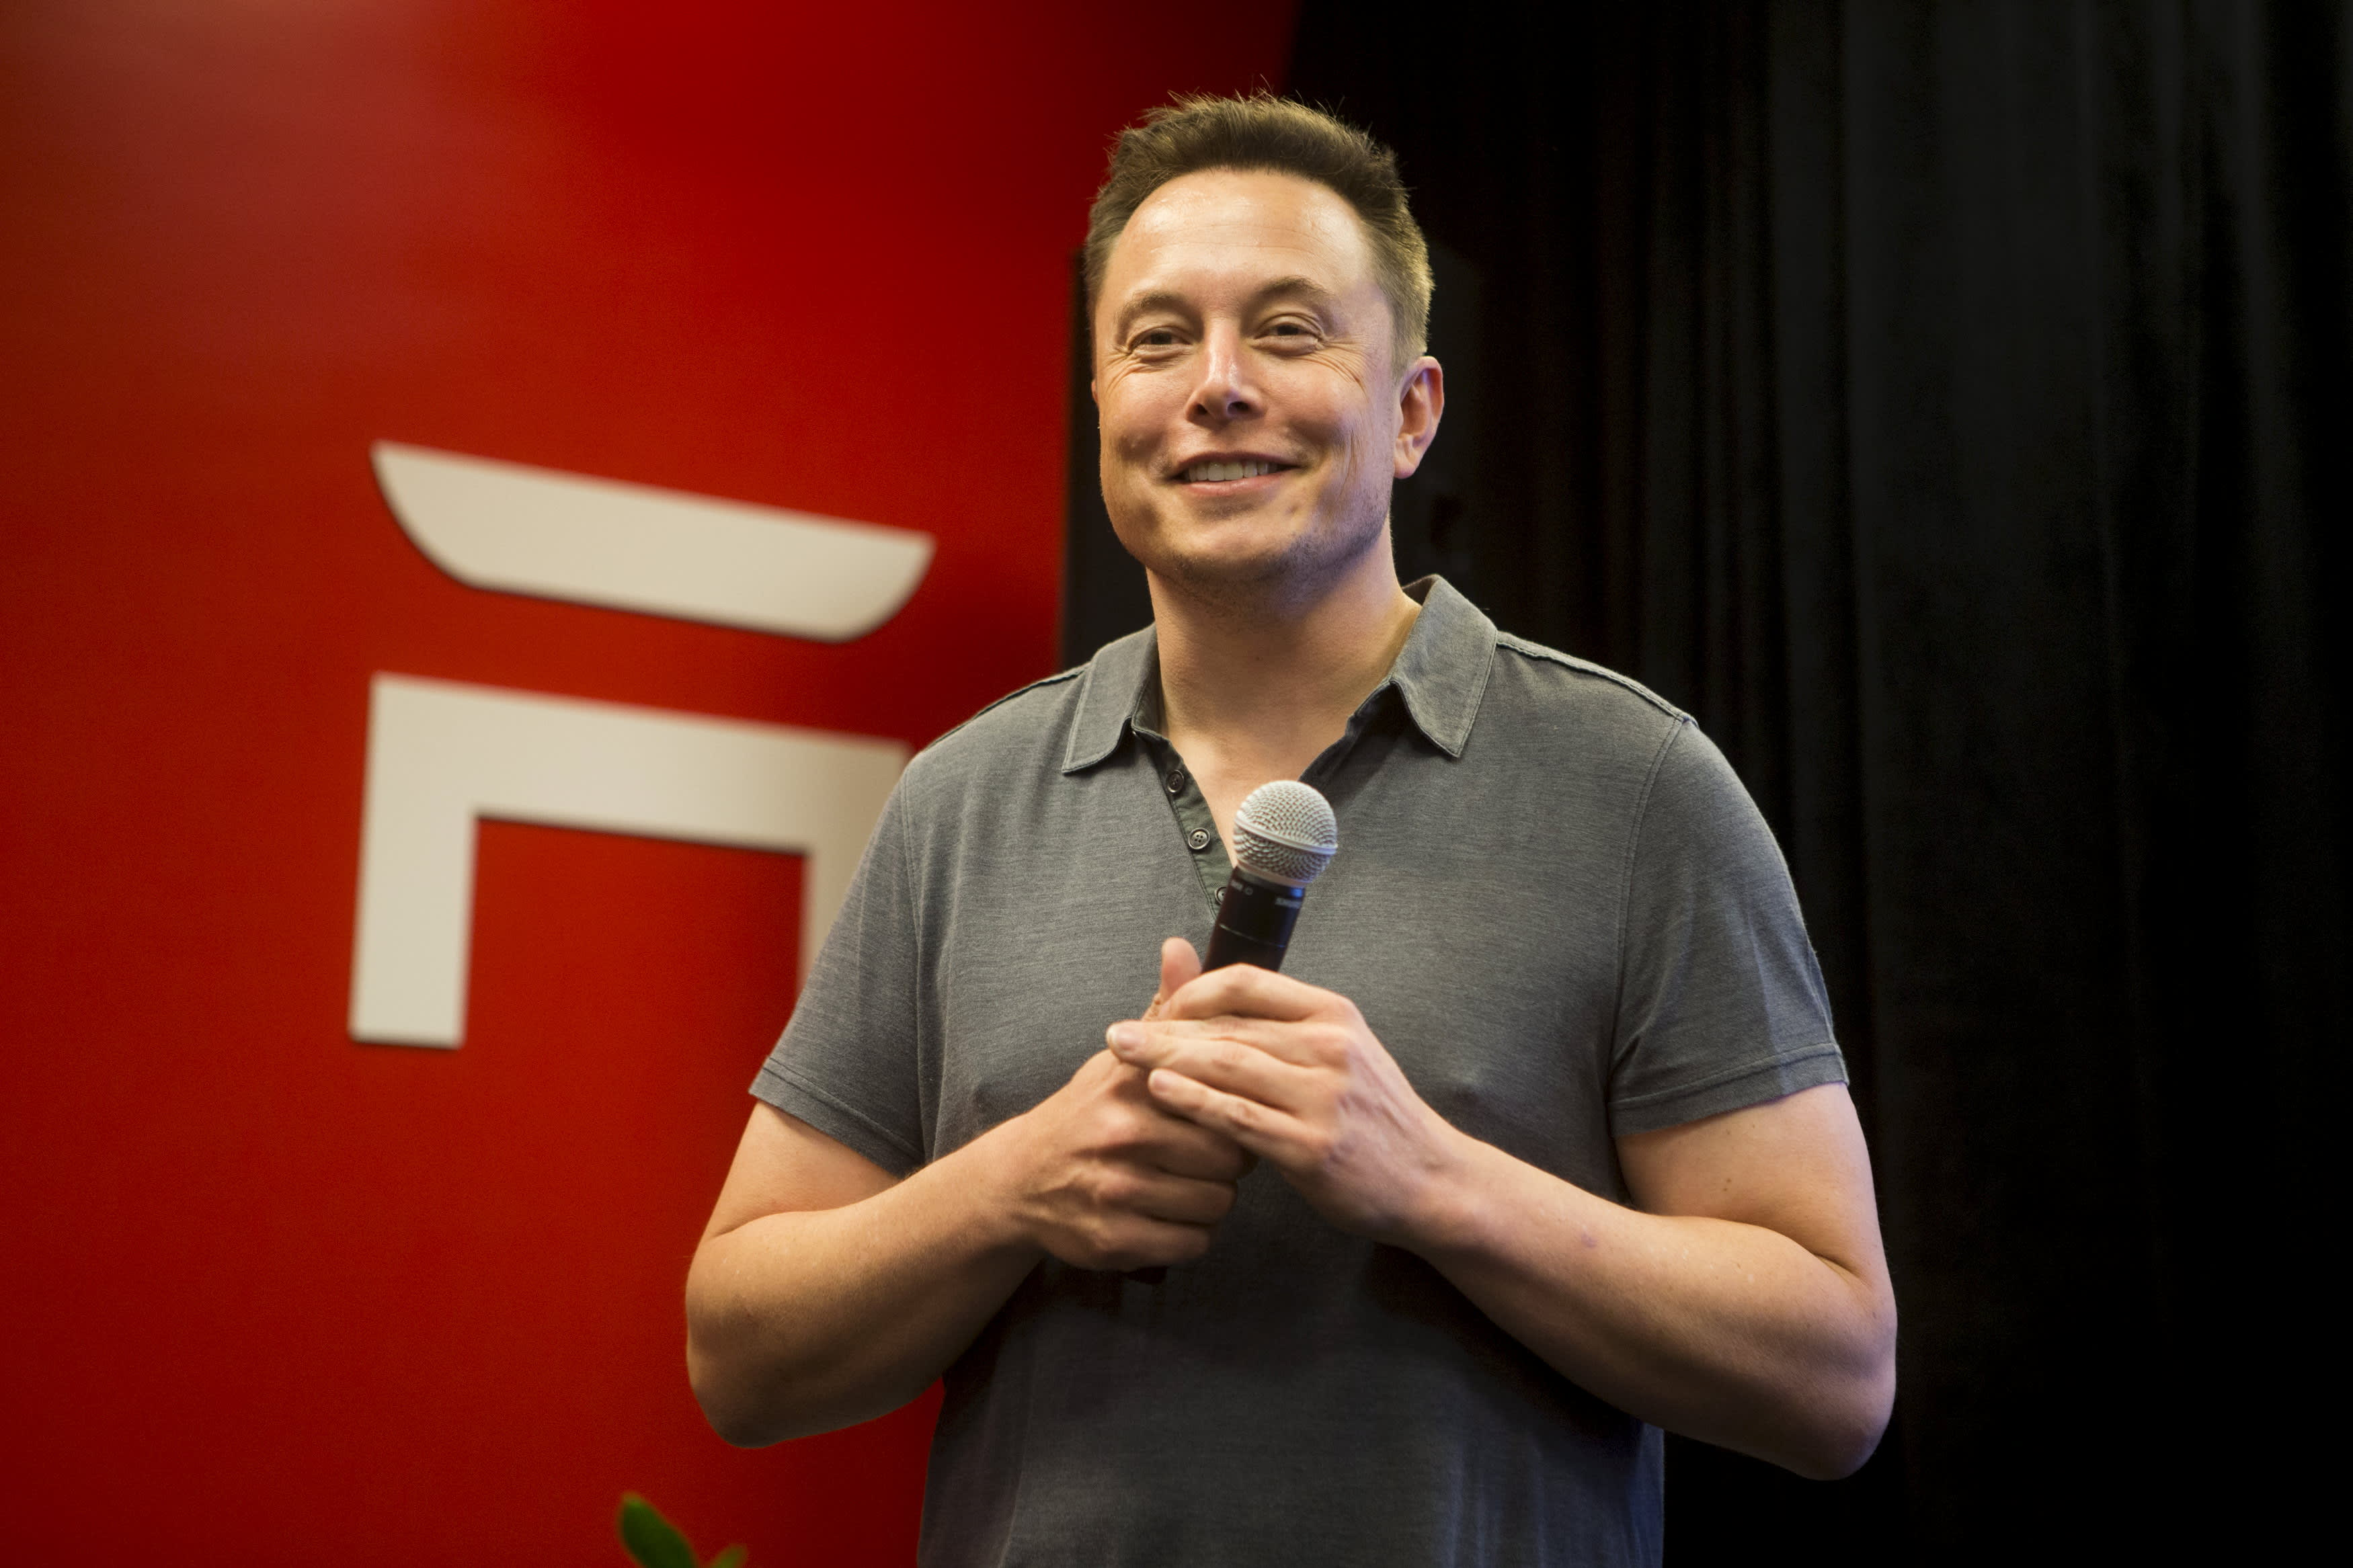 Elon Musk is the most inspirational leader in tech, new survey shows